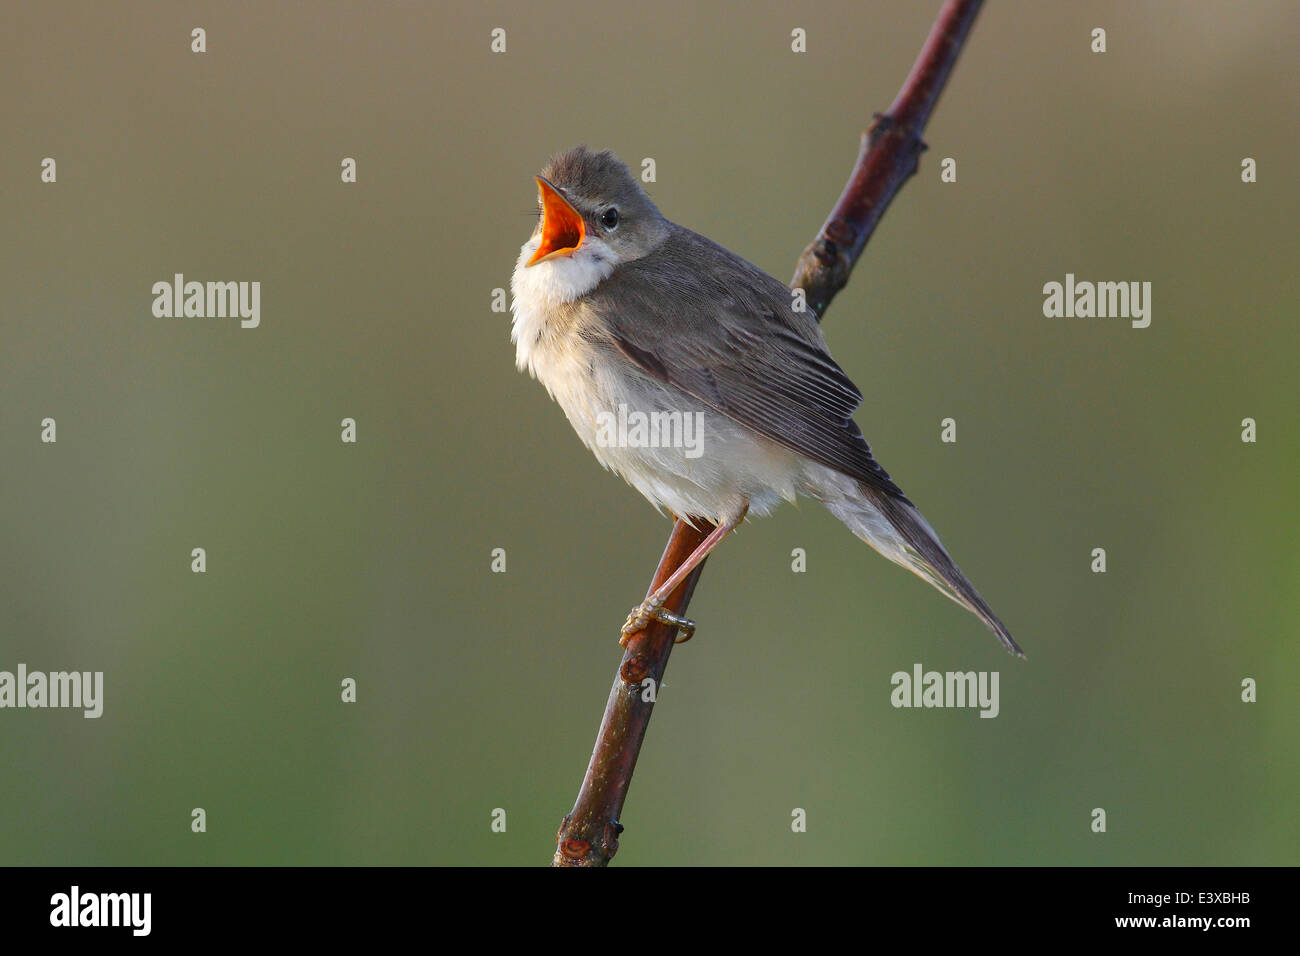 Marsh Warbler (Acrocephalus palustris) singing, perched on a branch, Dümmer Nature Park, Lower Saxony, Germany Stock Photo